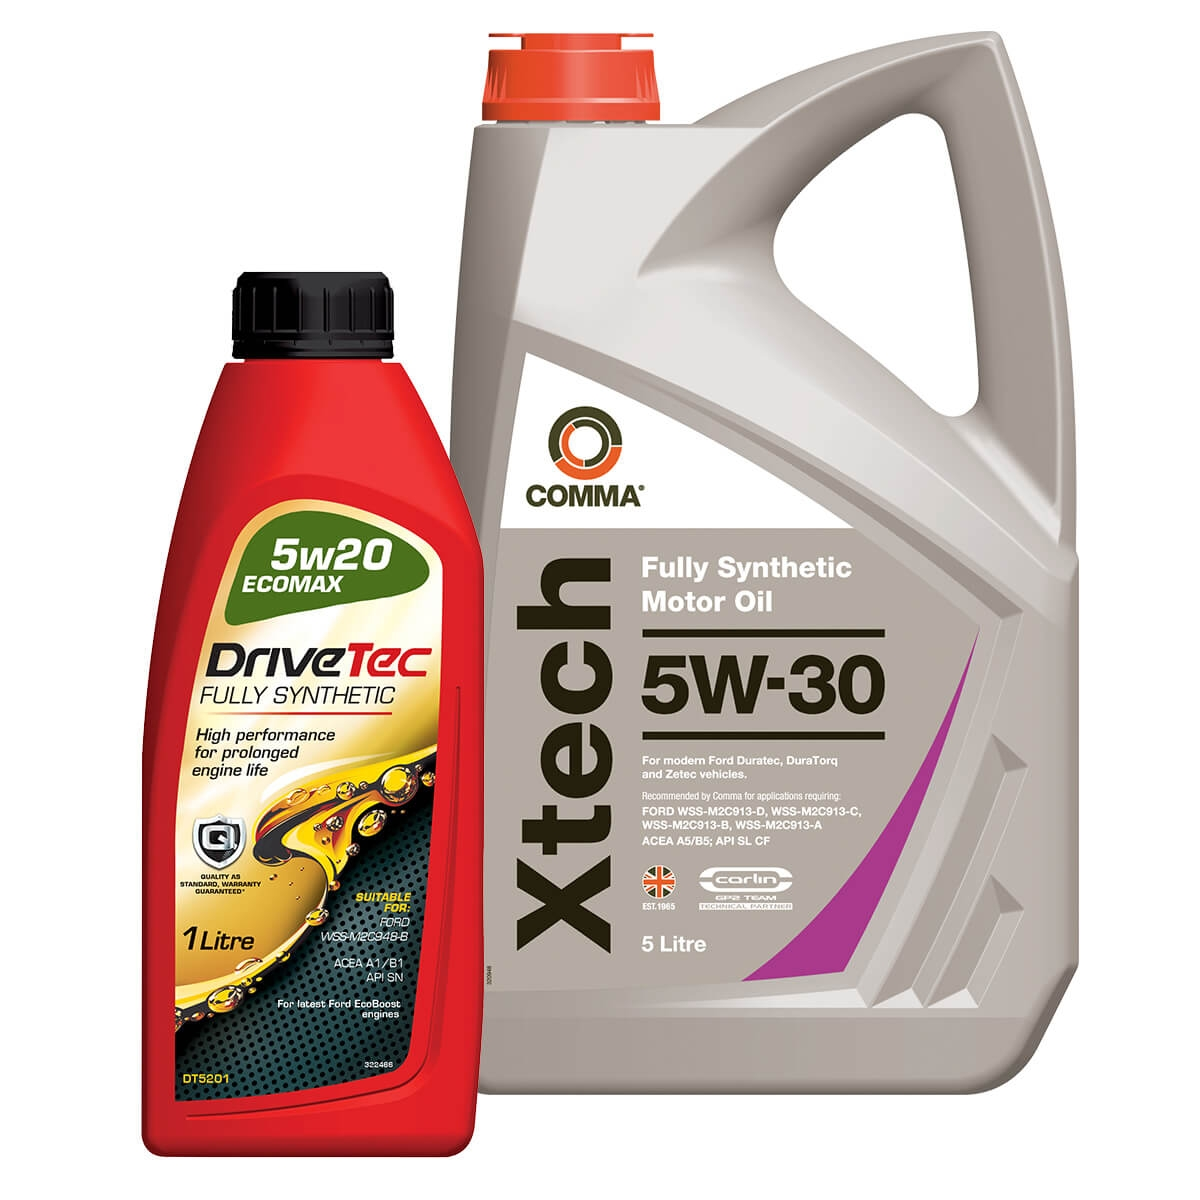 FIAT 500X Engine Oil